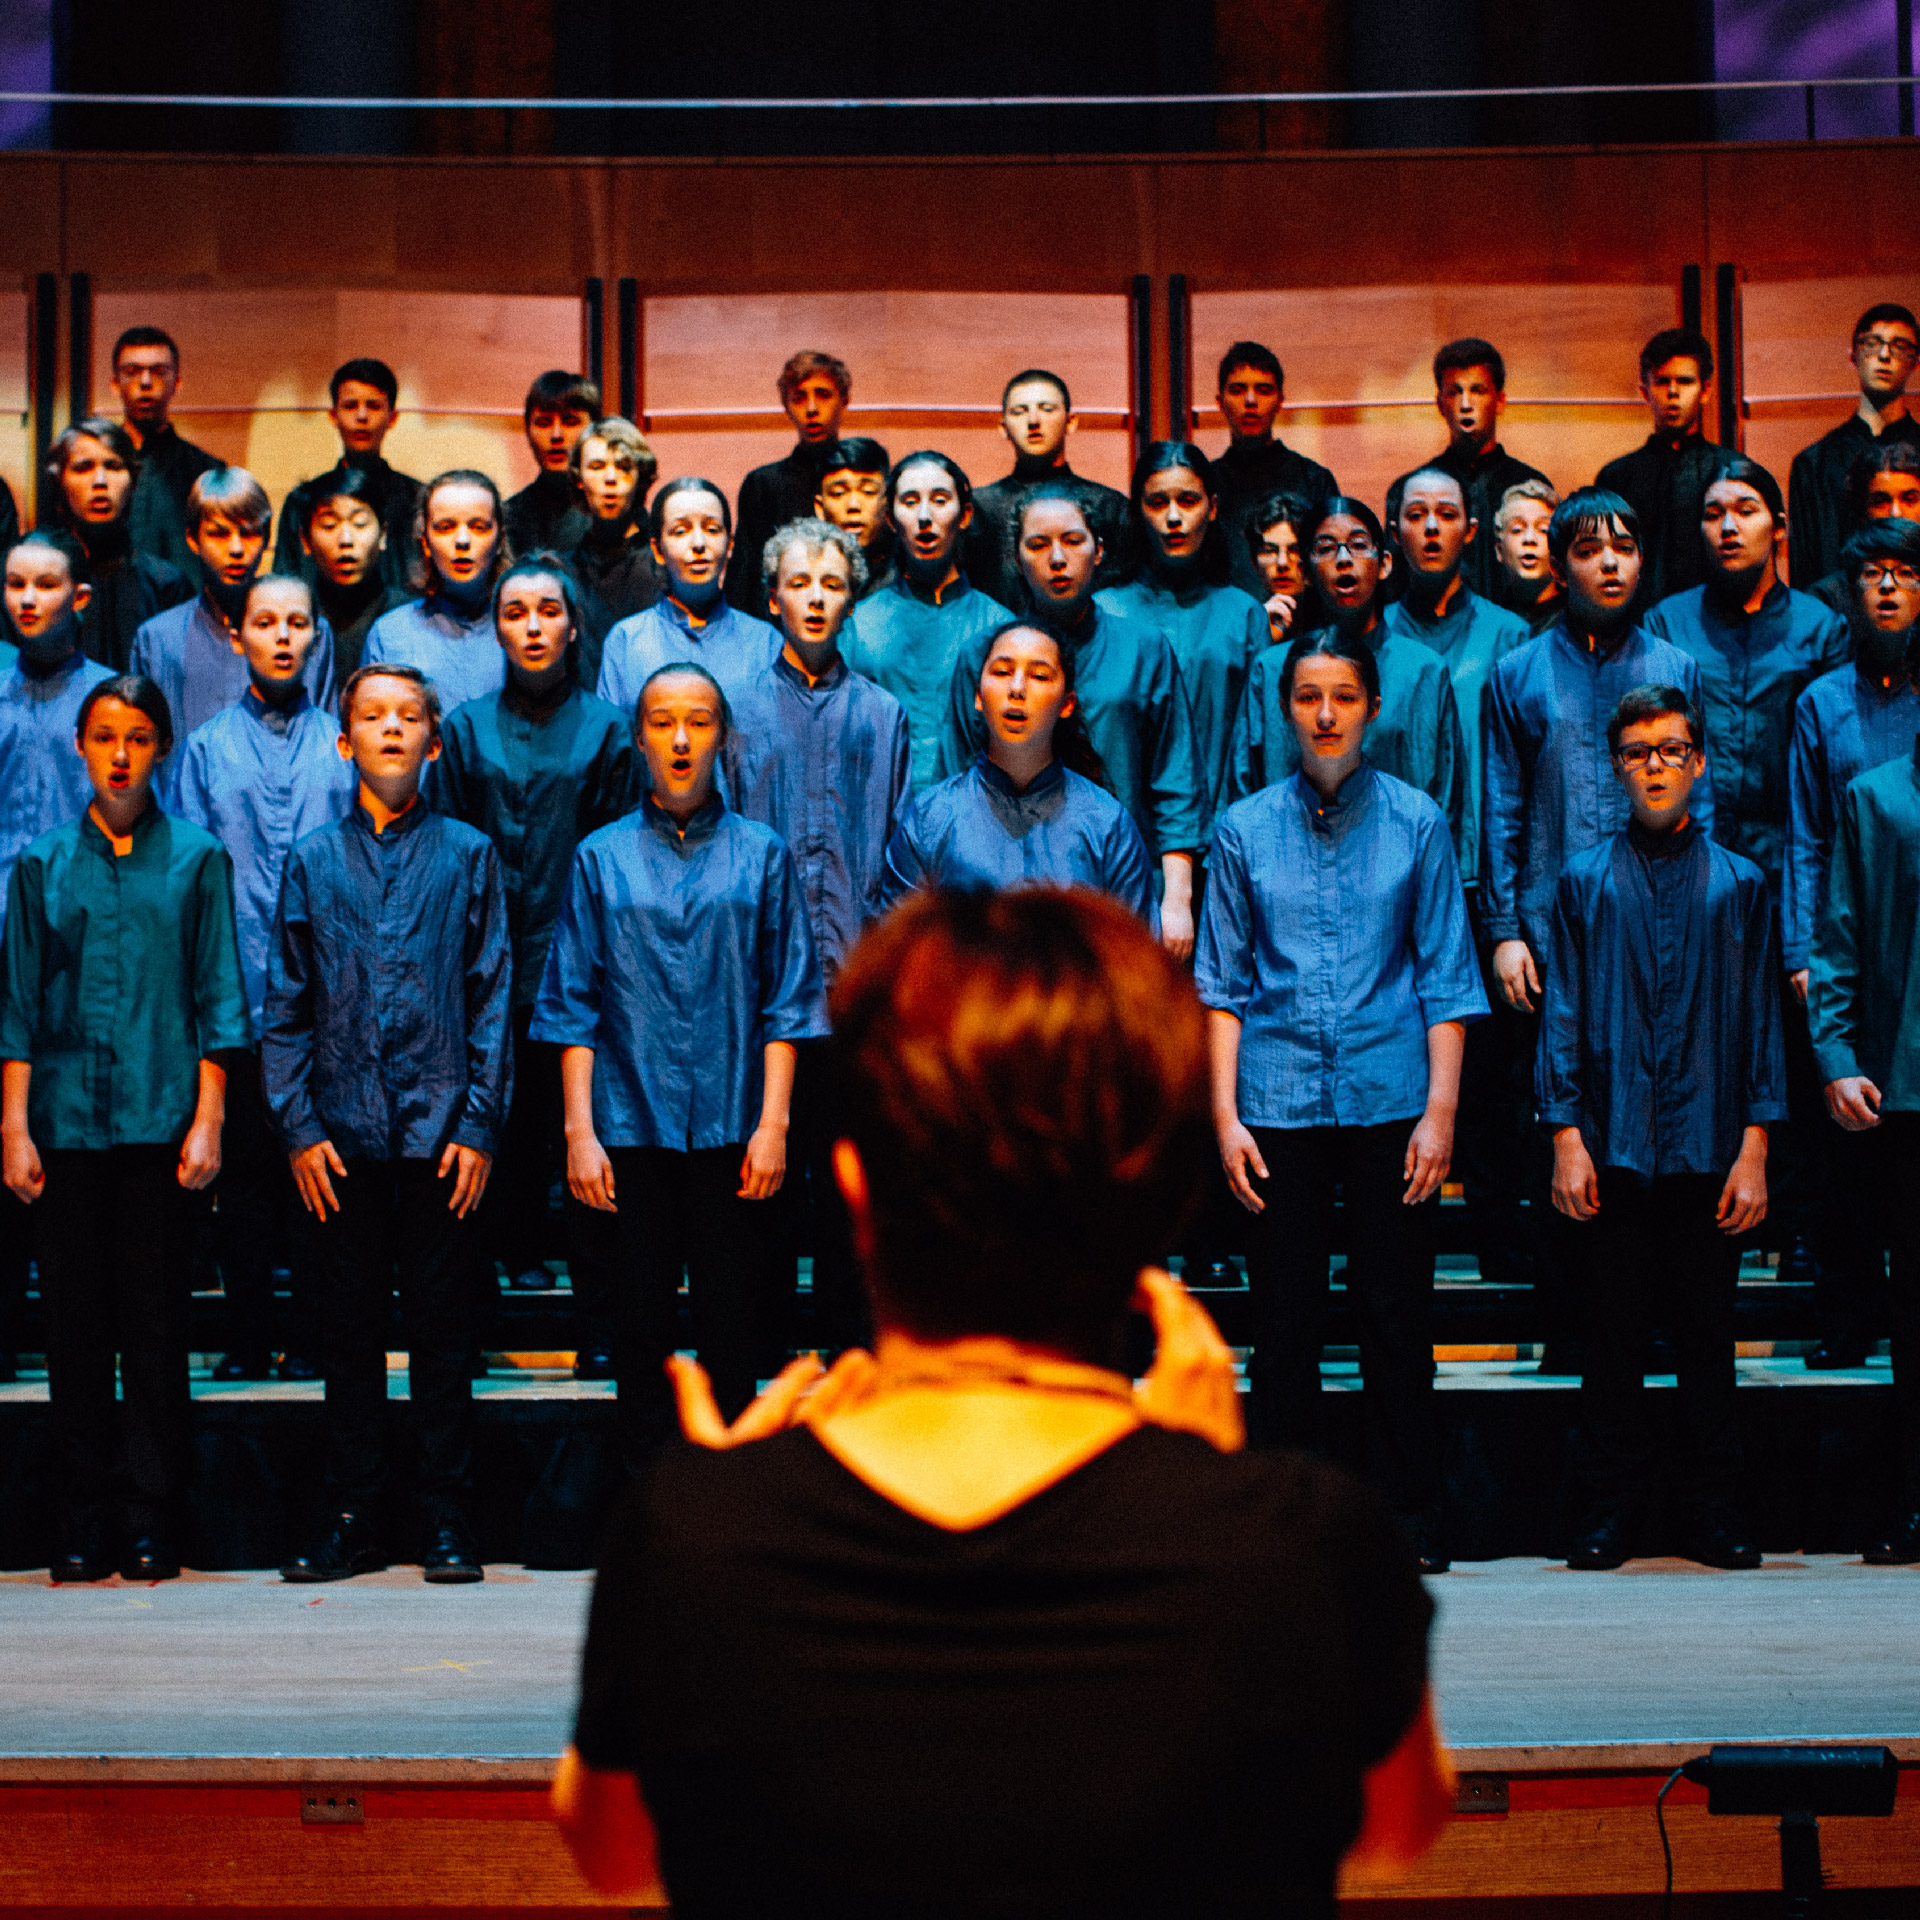 The Sydney Children's Choir - Gondwana World Choral Festival